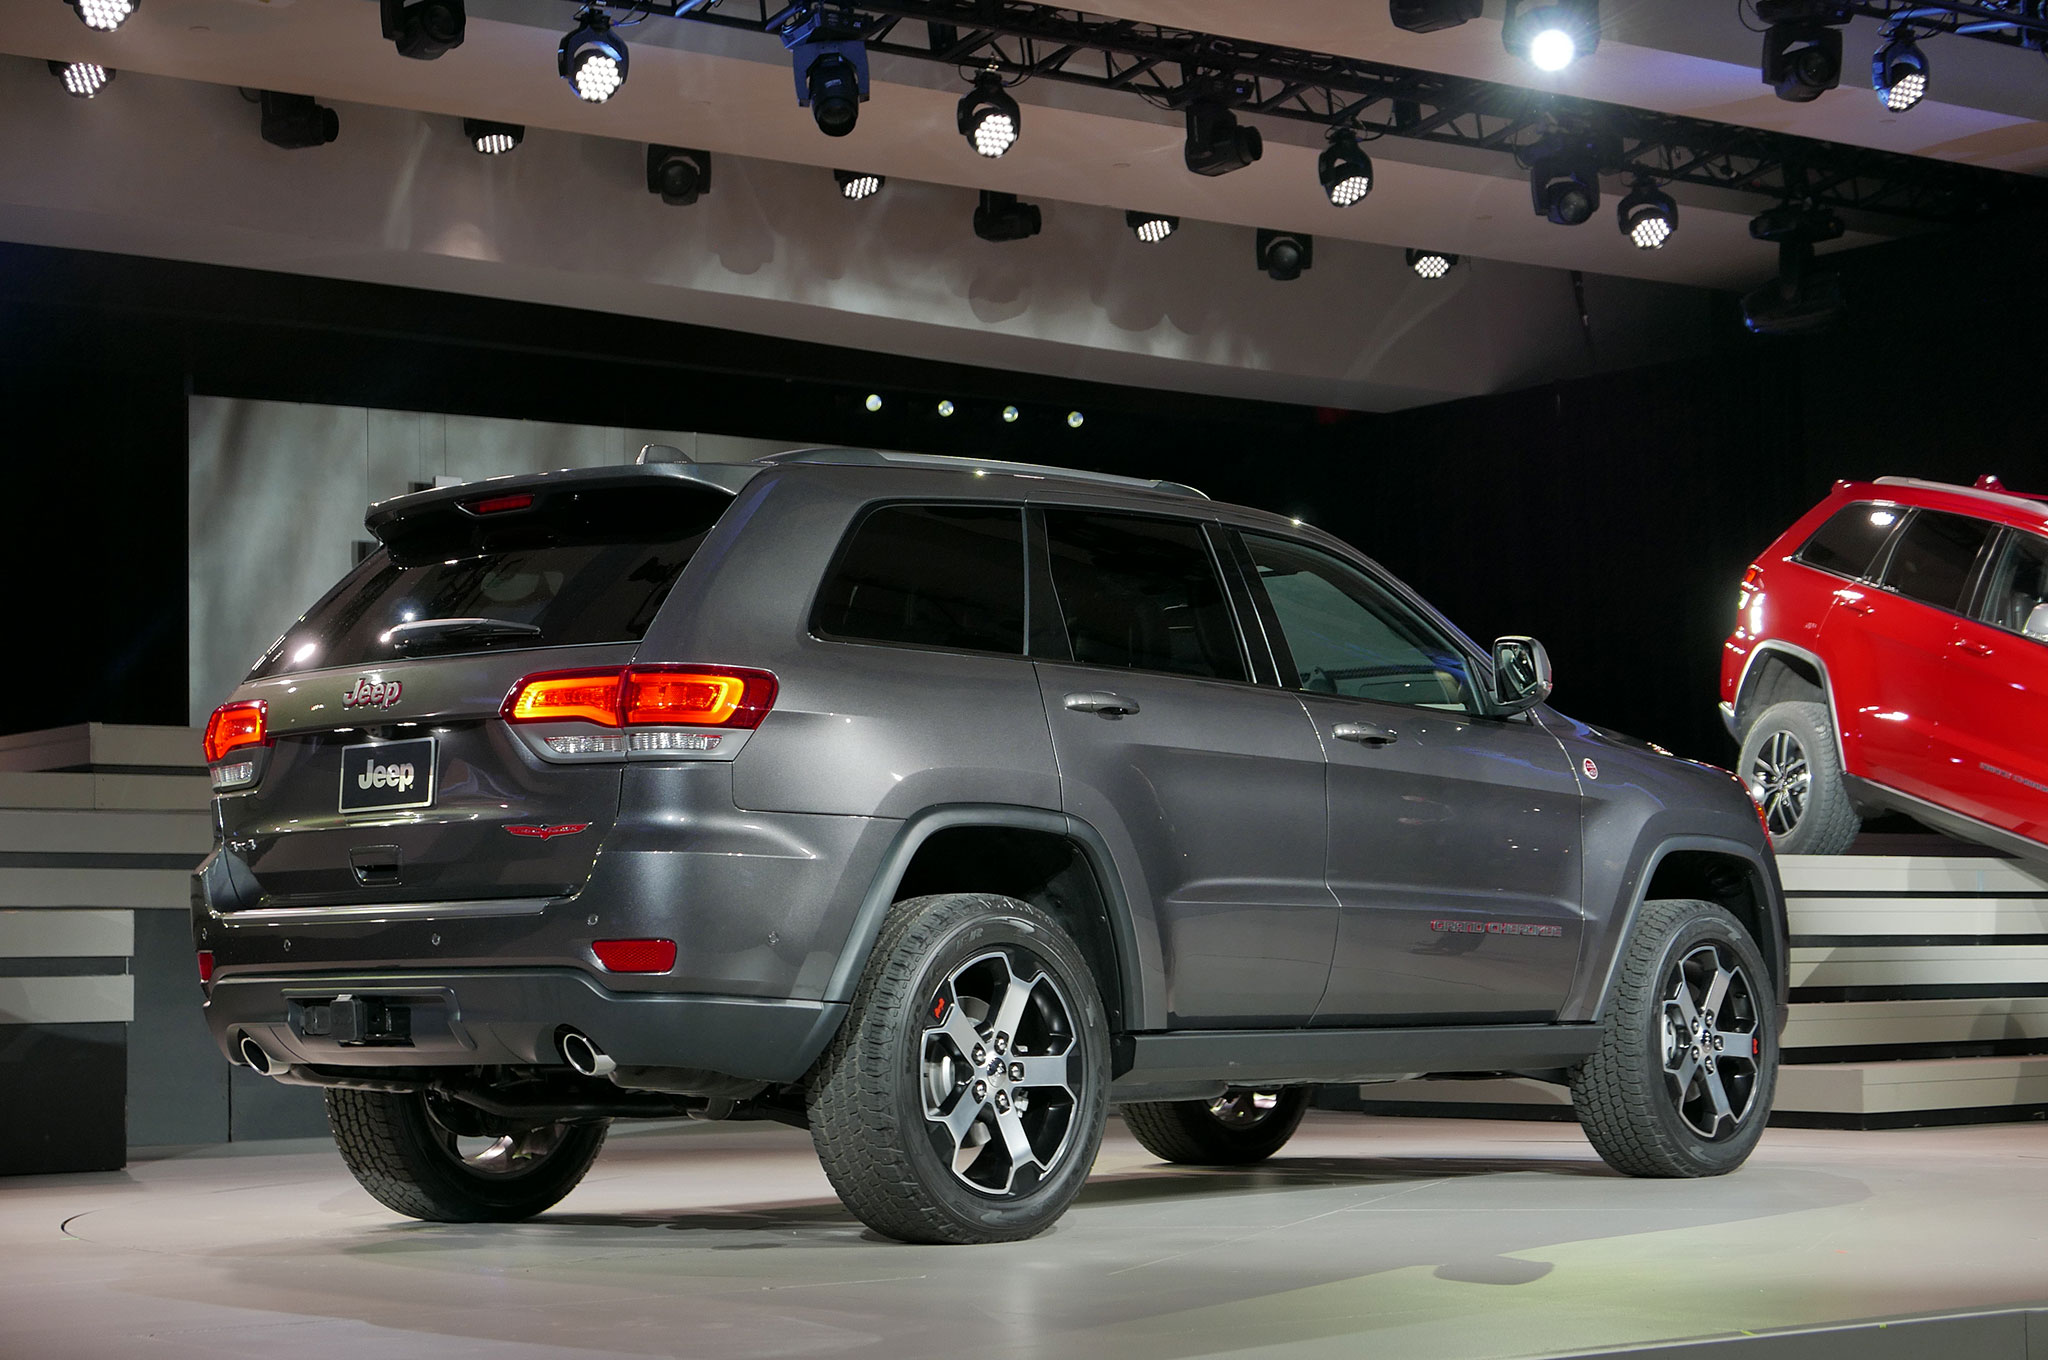 2019 Jeep Grand Cherokee Trailhawk | Car Photos Catalog 2019